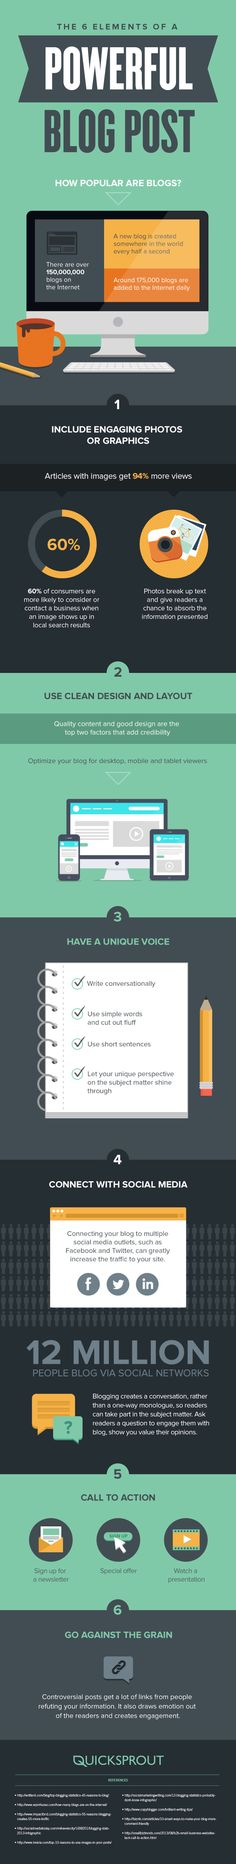 The 6 elements of a powerful blog post #infographic